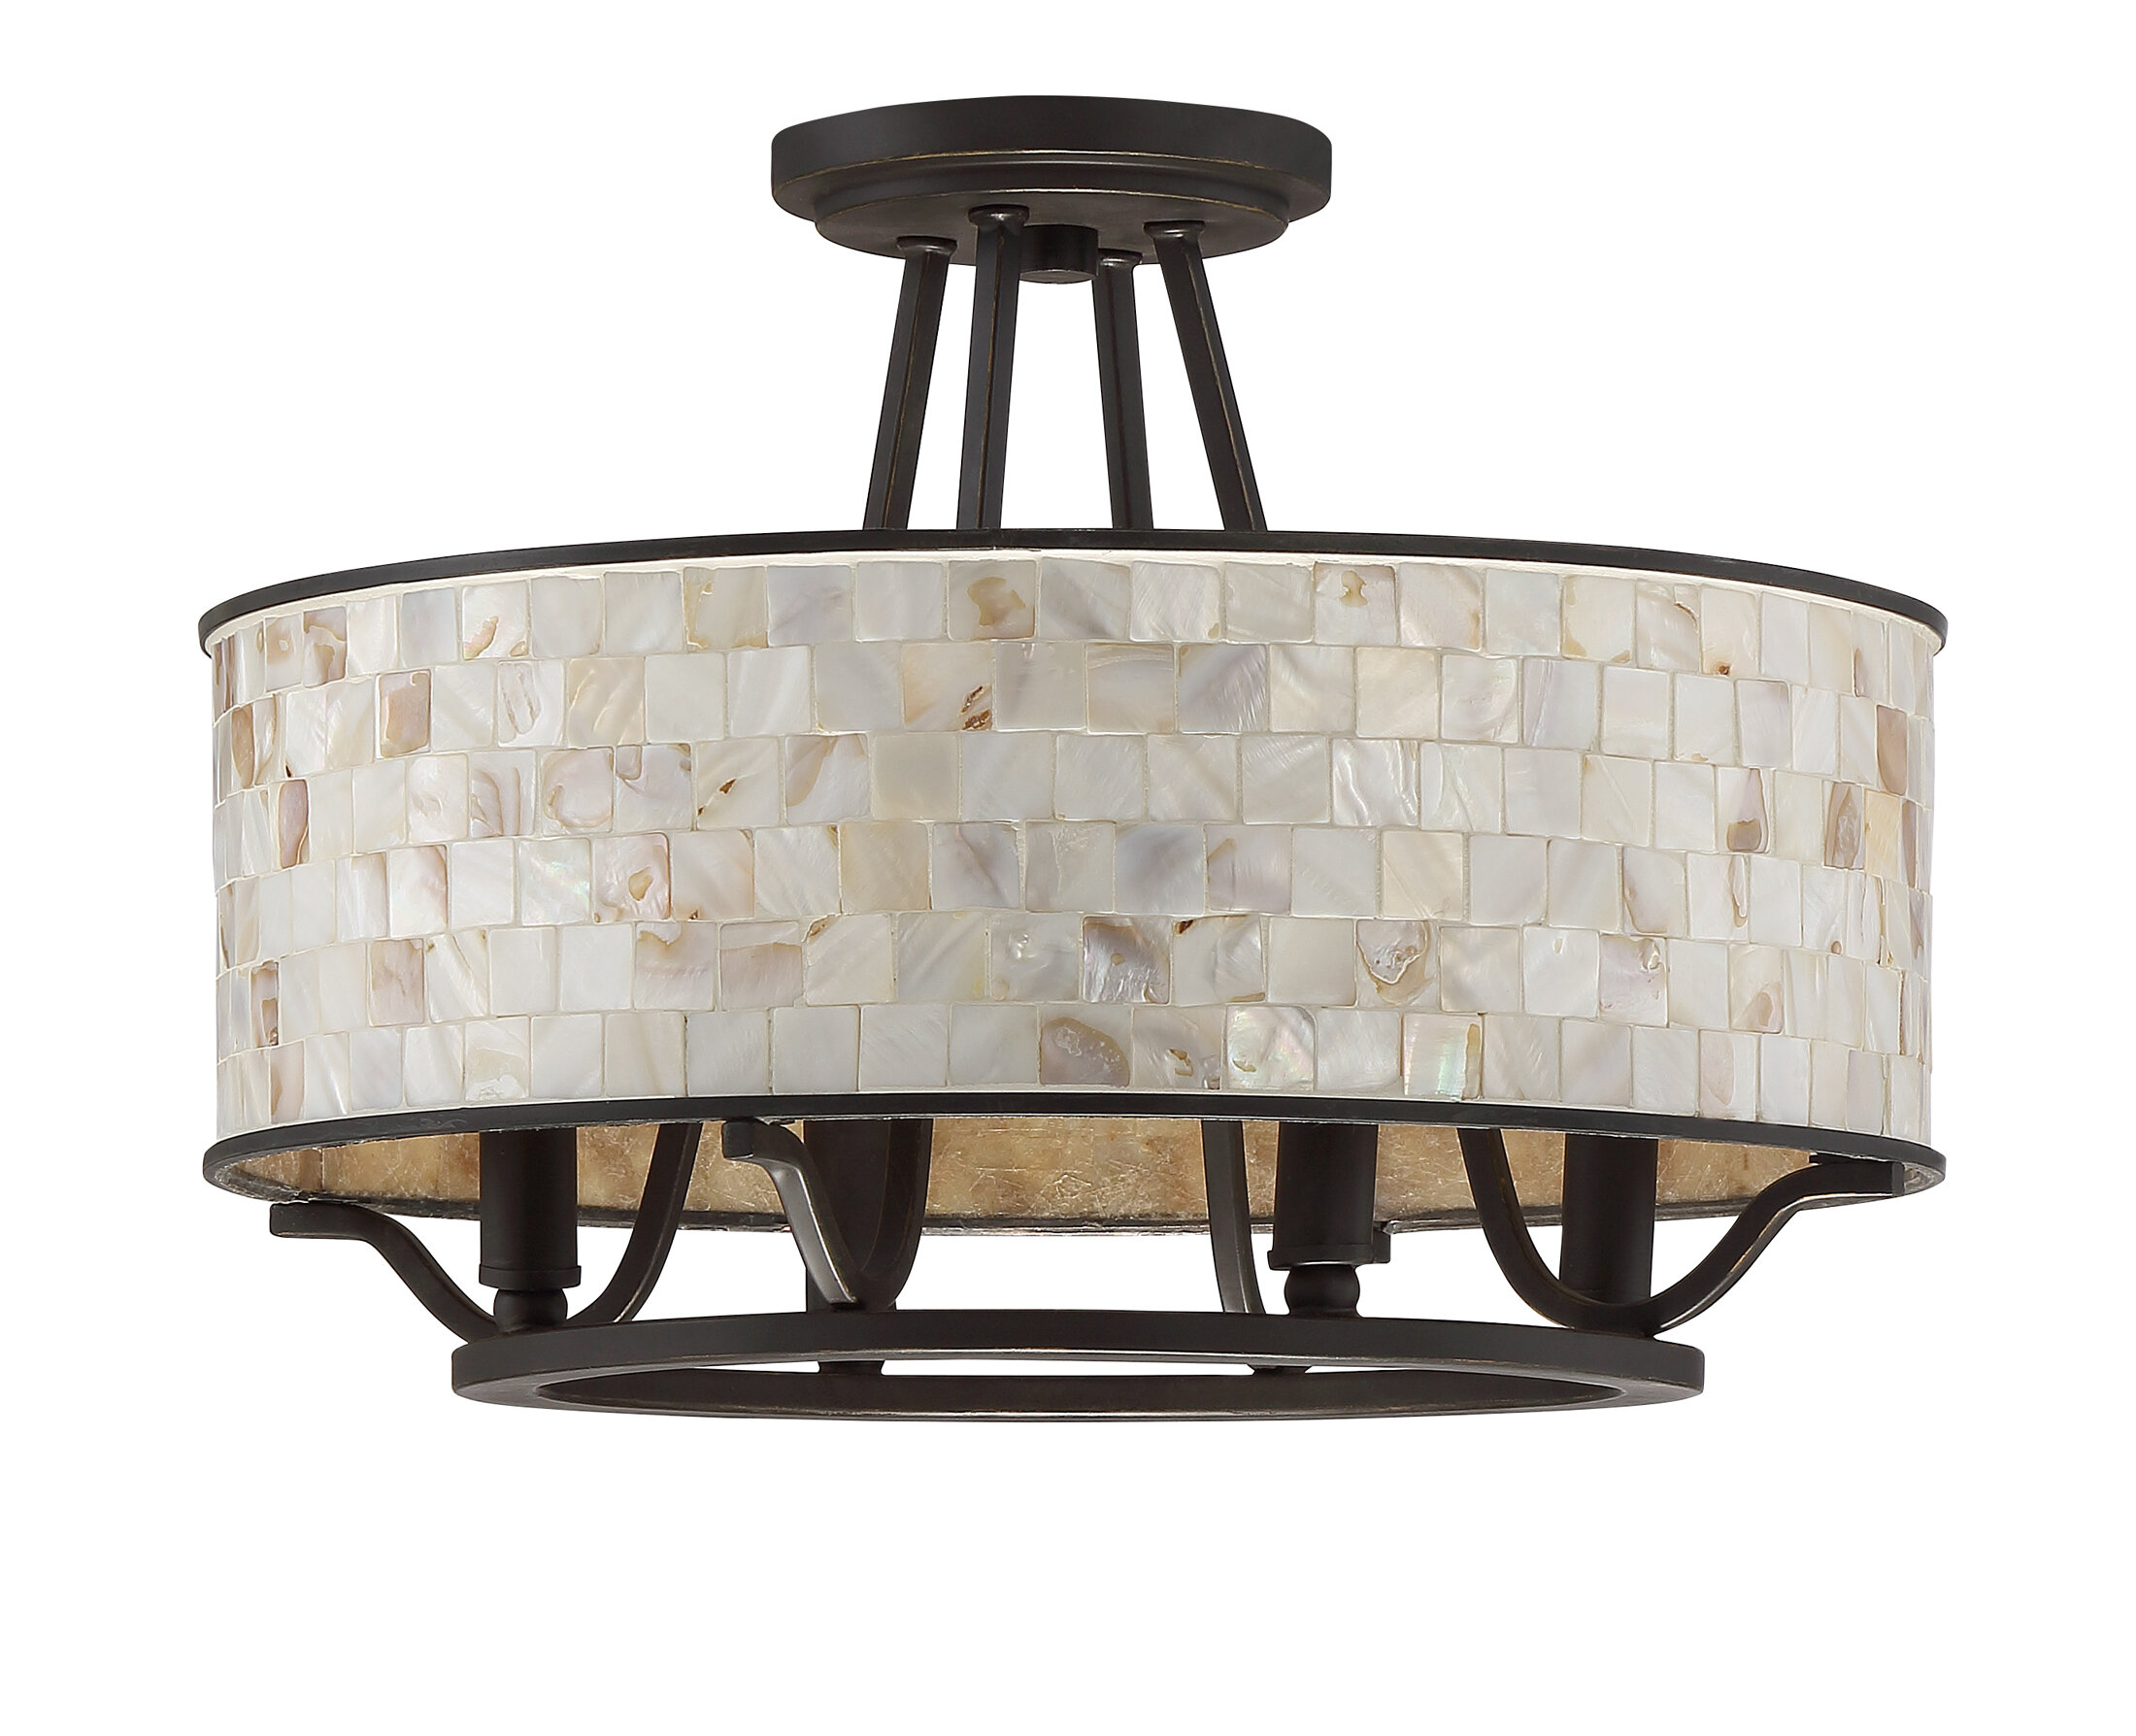 Bay Isle Home Eddington 4-Light Semi Flush Mount & Reviews | Wayfair